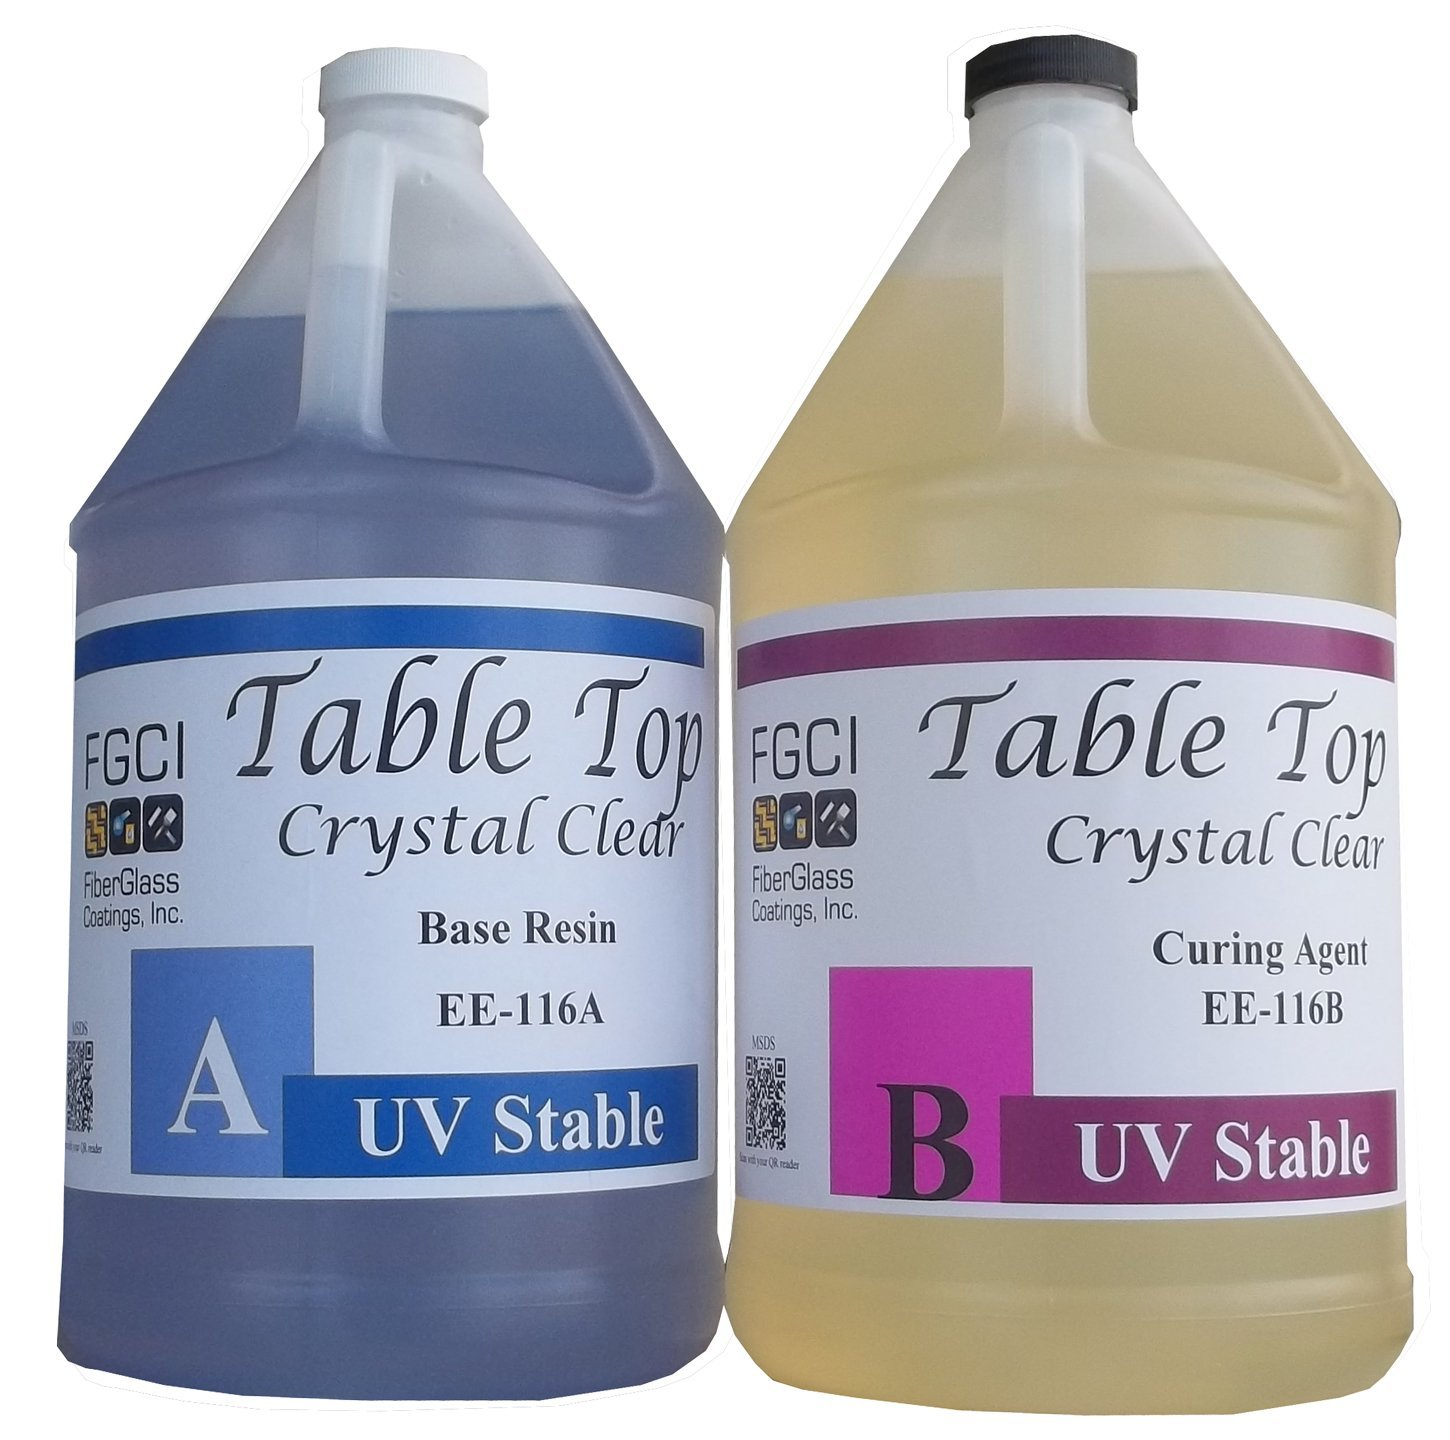 Epoxy Crystal Clear Table Top Resin, 1:1, 2 Gallon Kit, Crystal Clear, Parts A & B Included